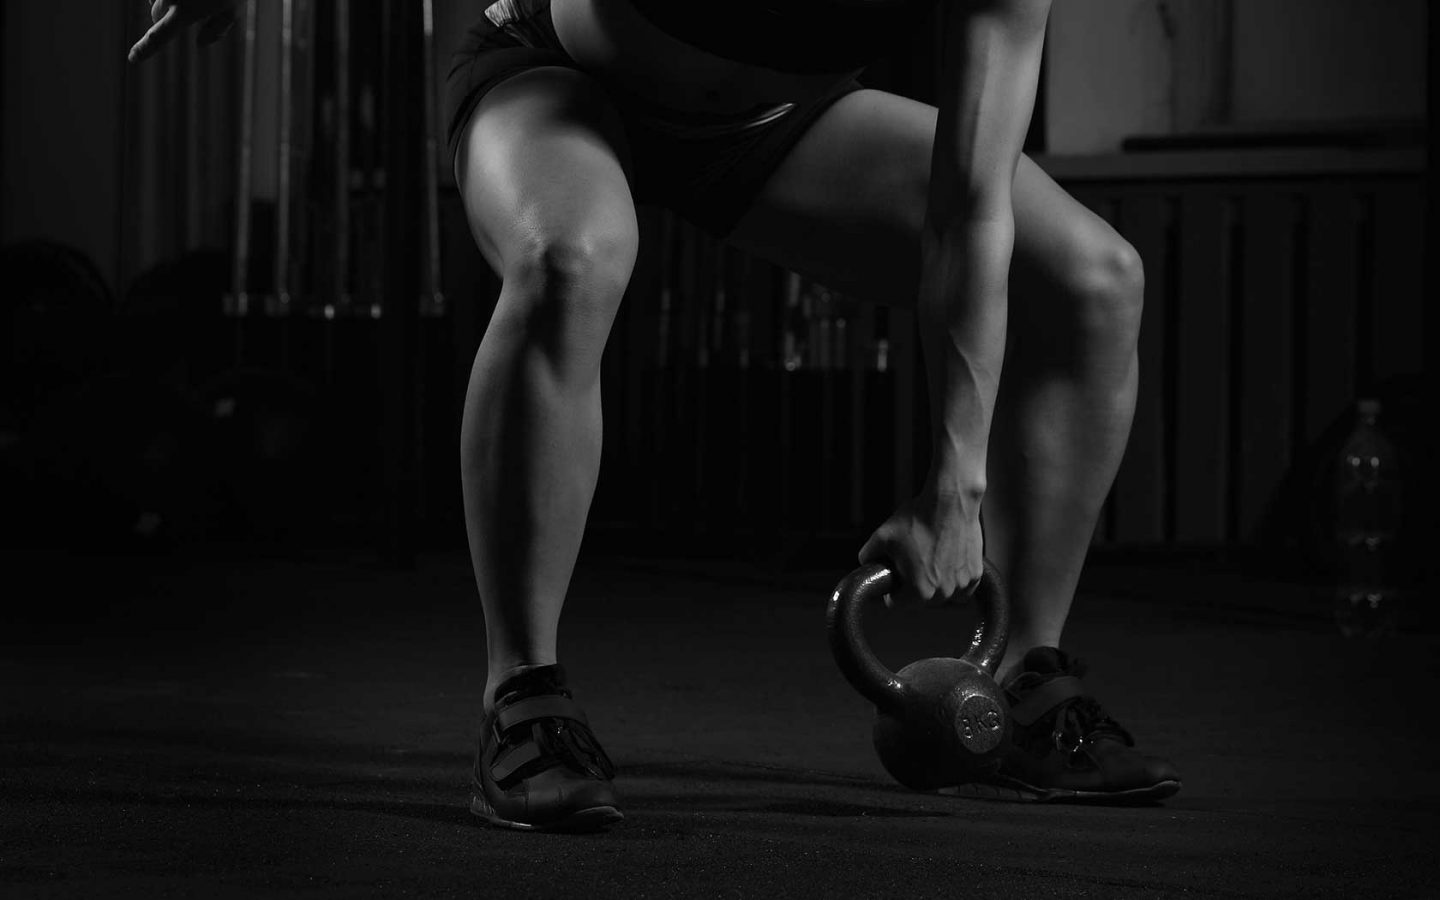 3 Ways To Build Strength Without Wrecking Your Joints